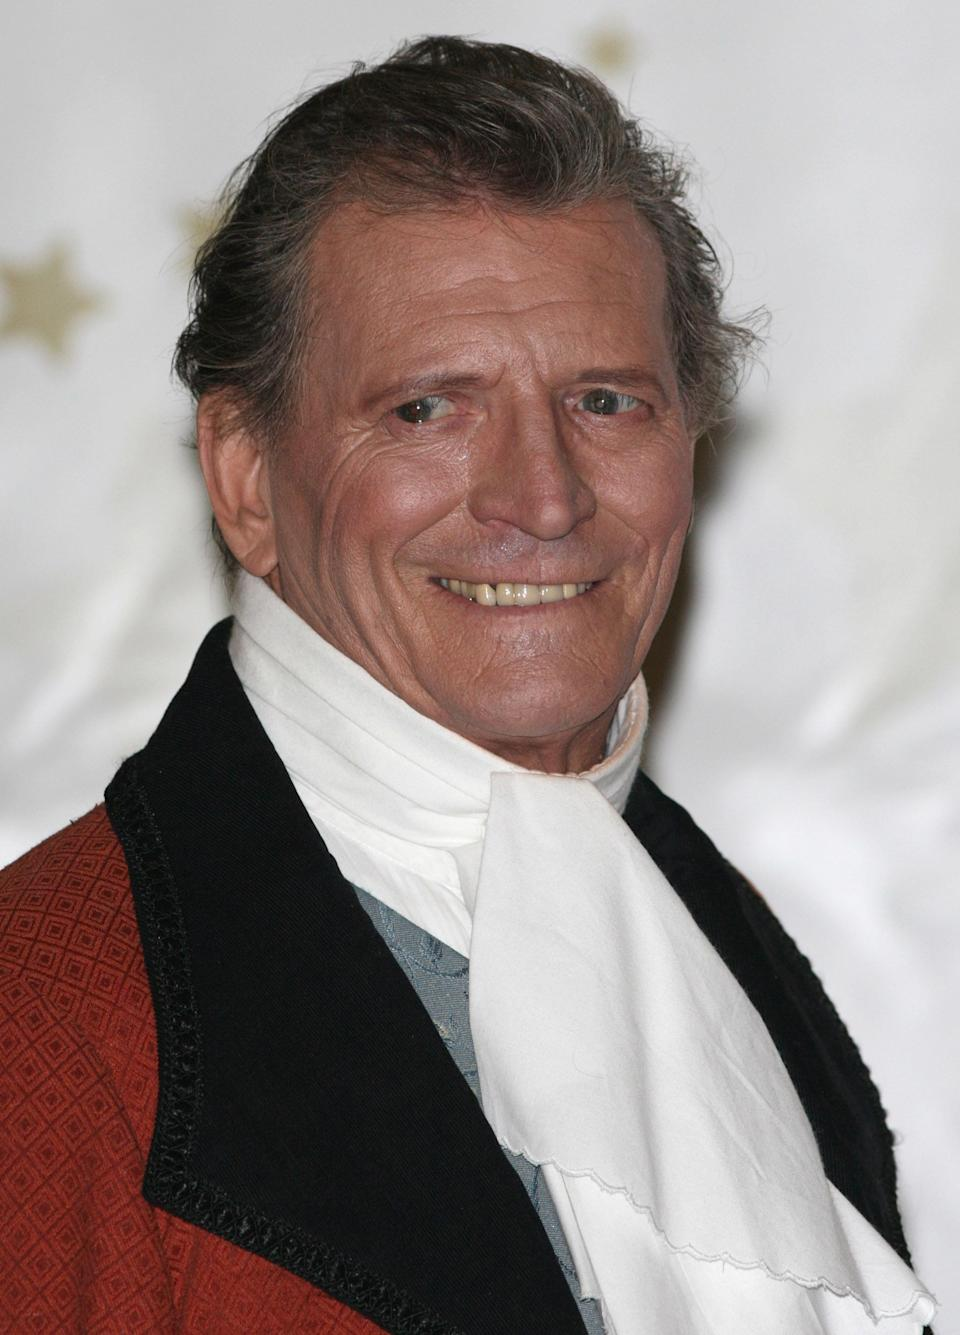 Johnny Briggs starred as Coronation Street's Mike Baldwin from 1976 to 2006, before leaving for pastures new.  He then appeared in the short-lived ITV soap 'Echo Beach'.